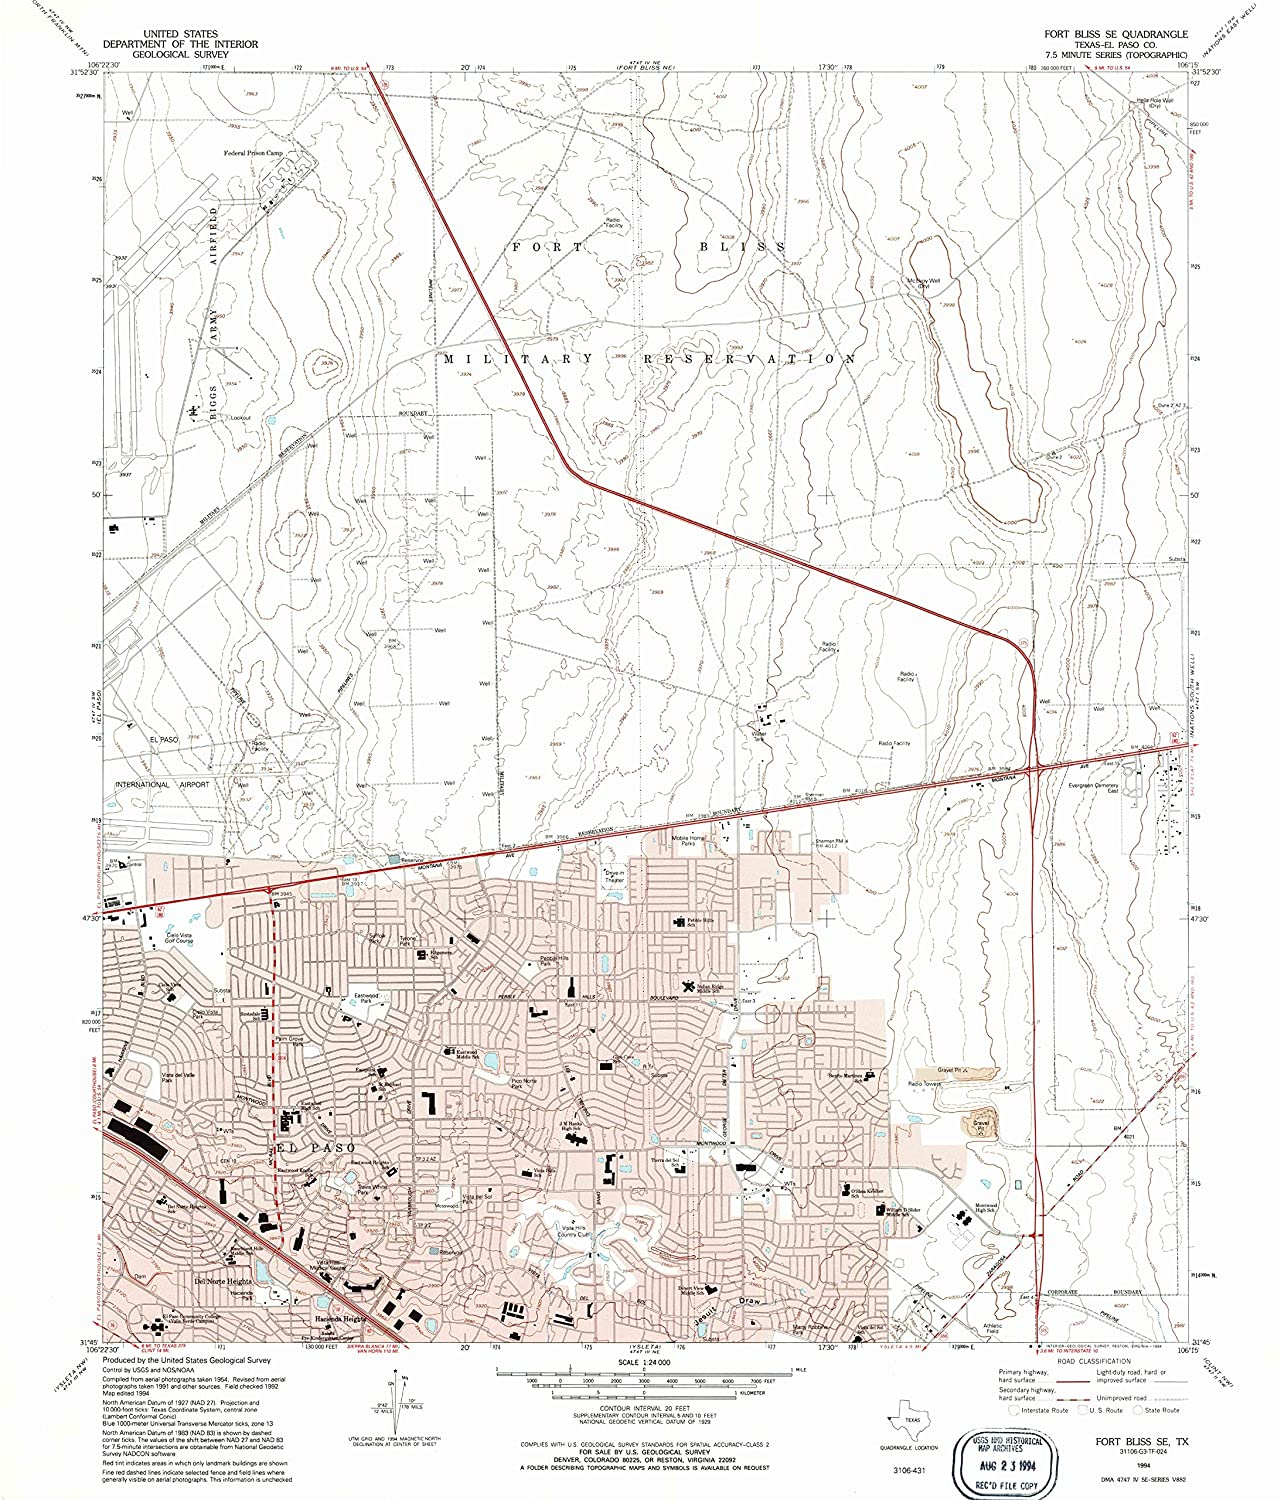 Map Print - Fort Bliss SE, Texas (1994), 1:24000 Scale - 24